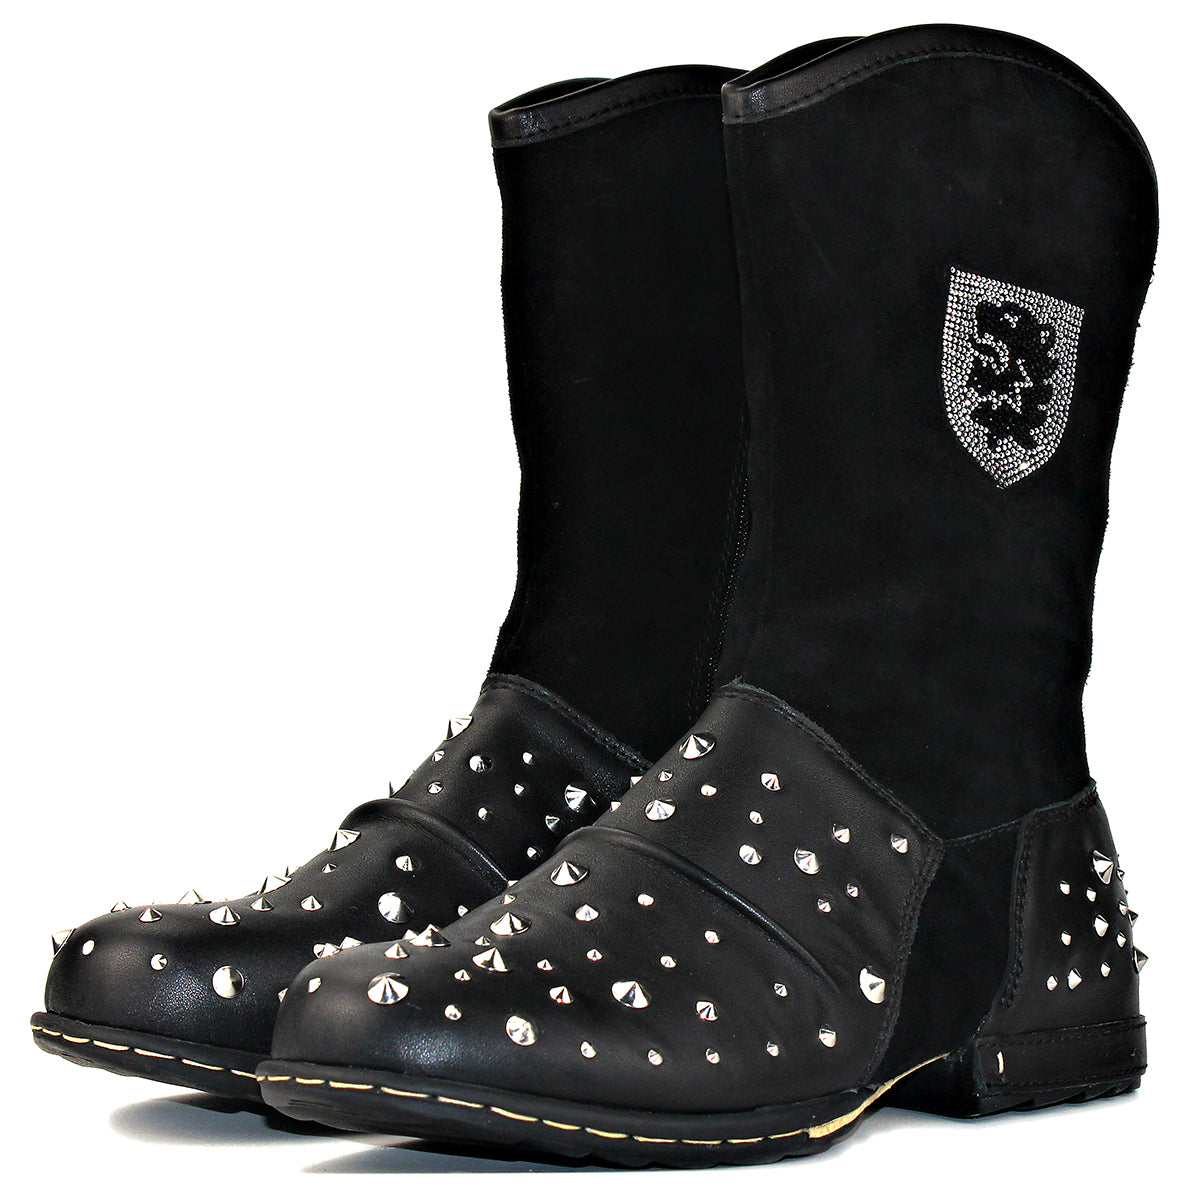 Western Punk Genuine Leather High Top Ankle Boots With Rivets